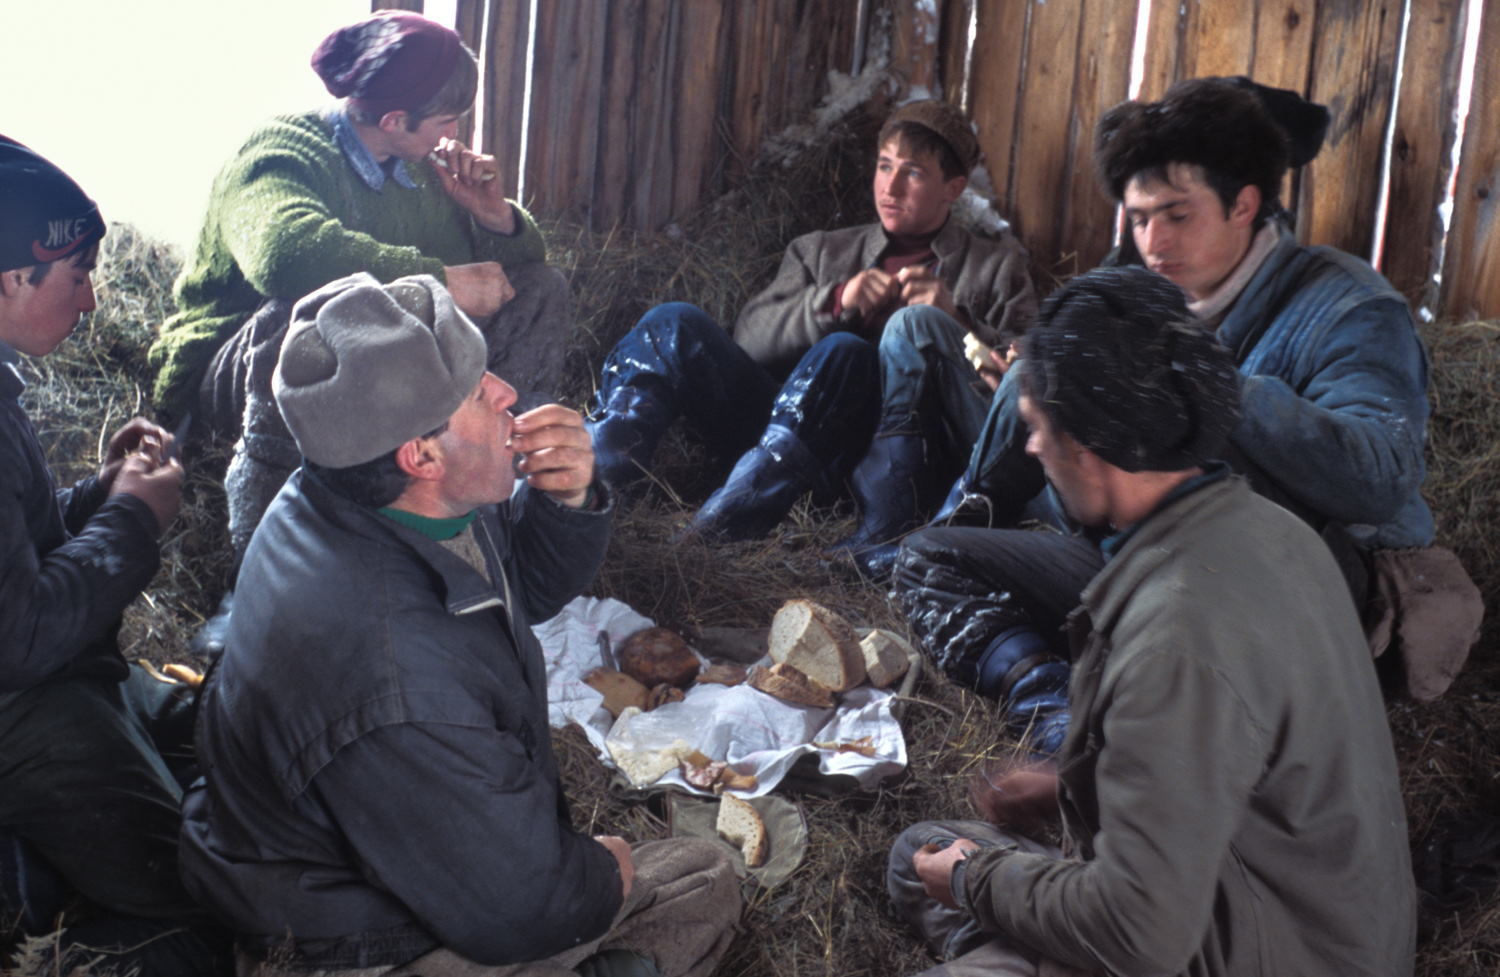 Men eating in a bark in midwinter above the village of Jidegsegpataka Transylvania Romania after loading their sledges (Leica M6 and 35mm f/1.4 Summilux)